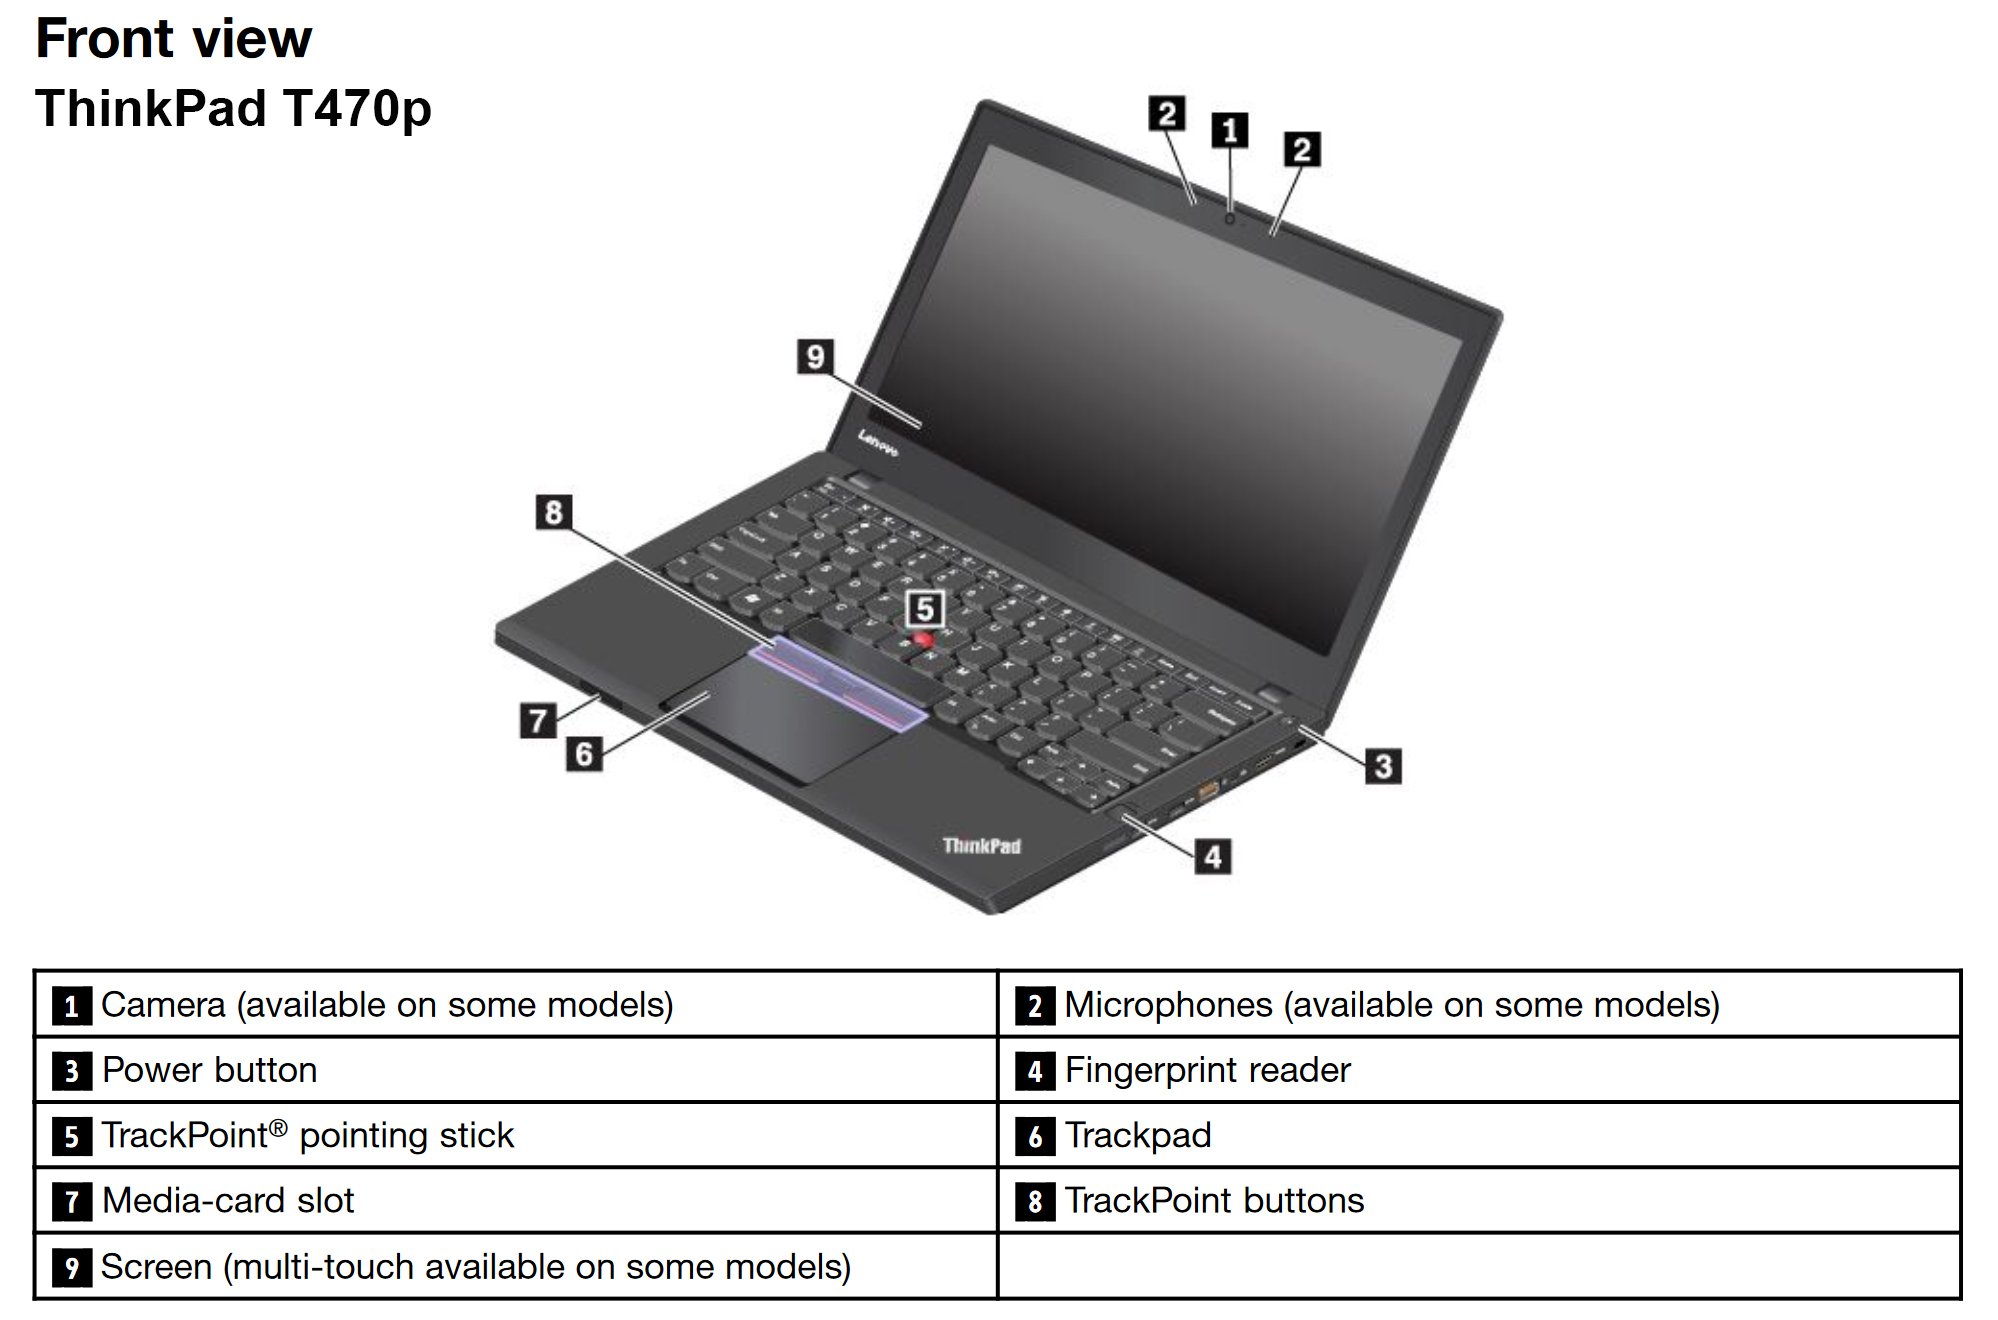 ThinkPad T470p front view